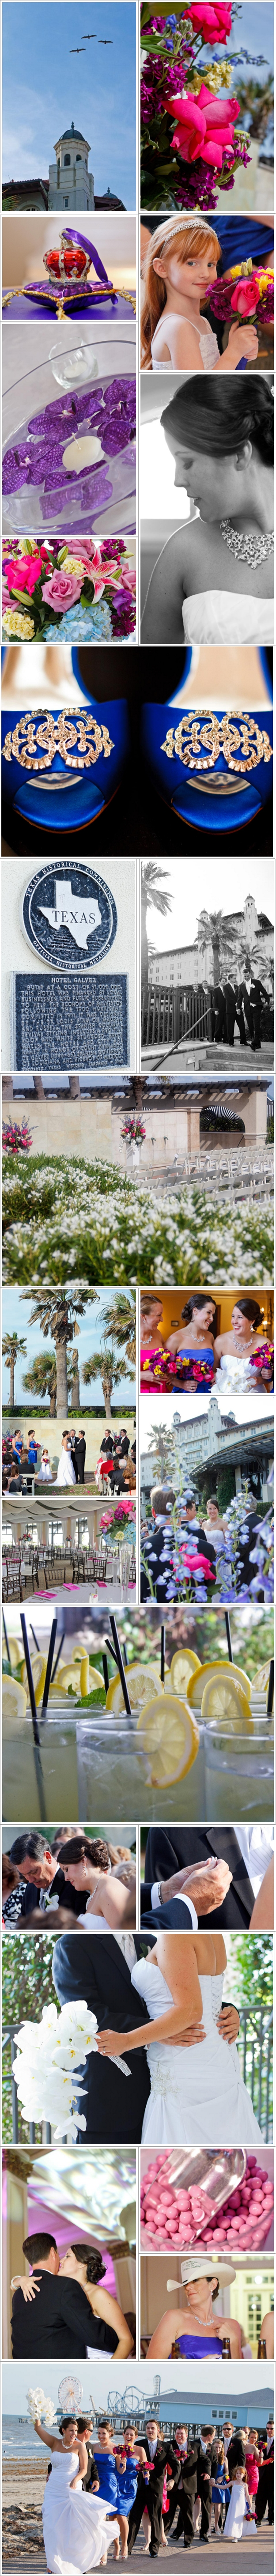 Galveston Wedding Photographer, beach, historic hotel, Hotel Galvez and Spa, Wyndham, outdoor ceremony, sunset ceremony, colorful, seawall, Pleasure Pier, strapless gown, first look, Houston Wedding Photographer